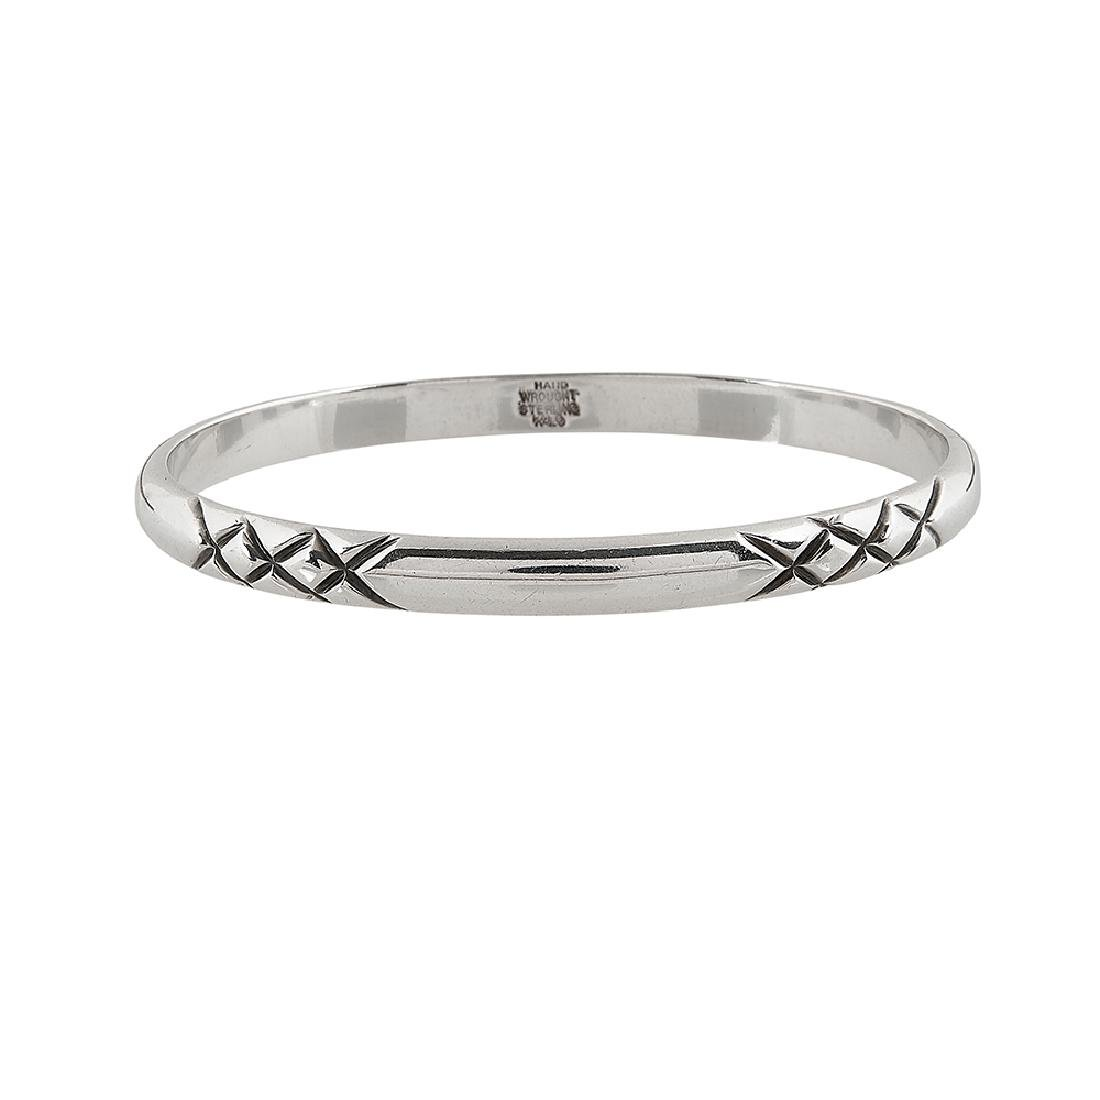 The Kalo Shop bangle bracelet